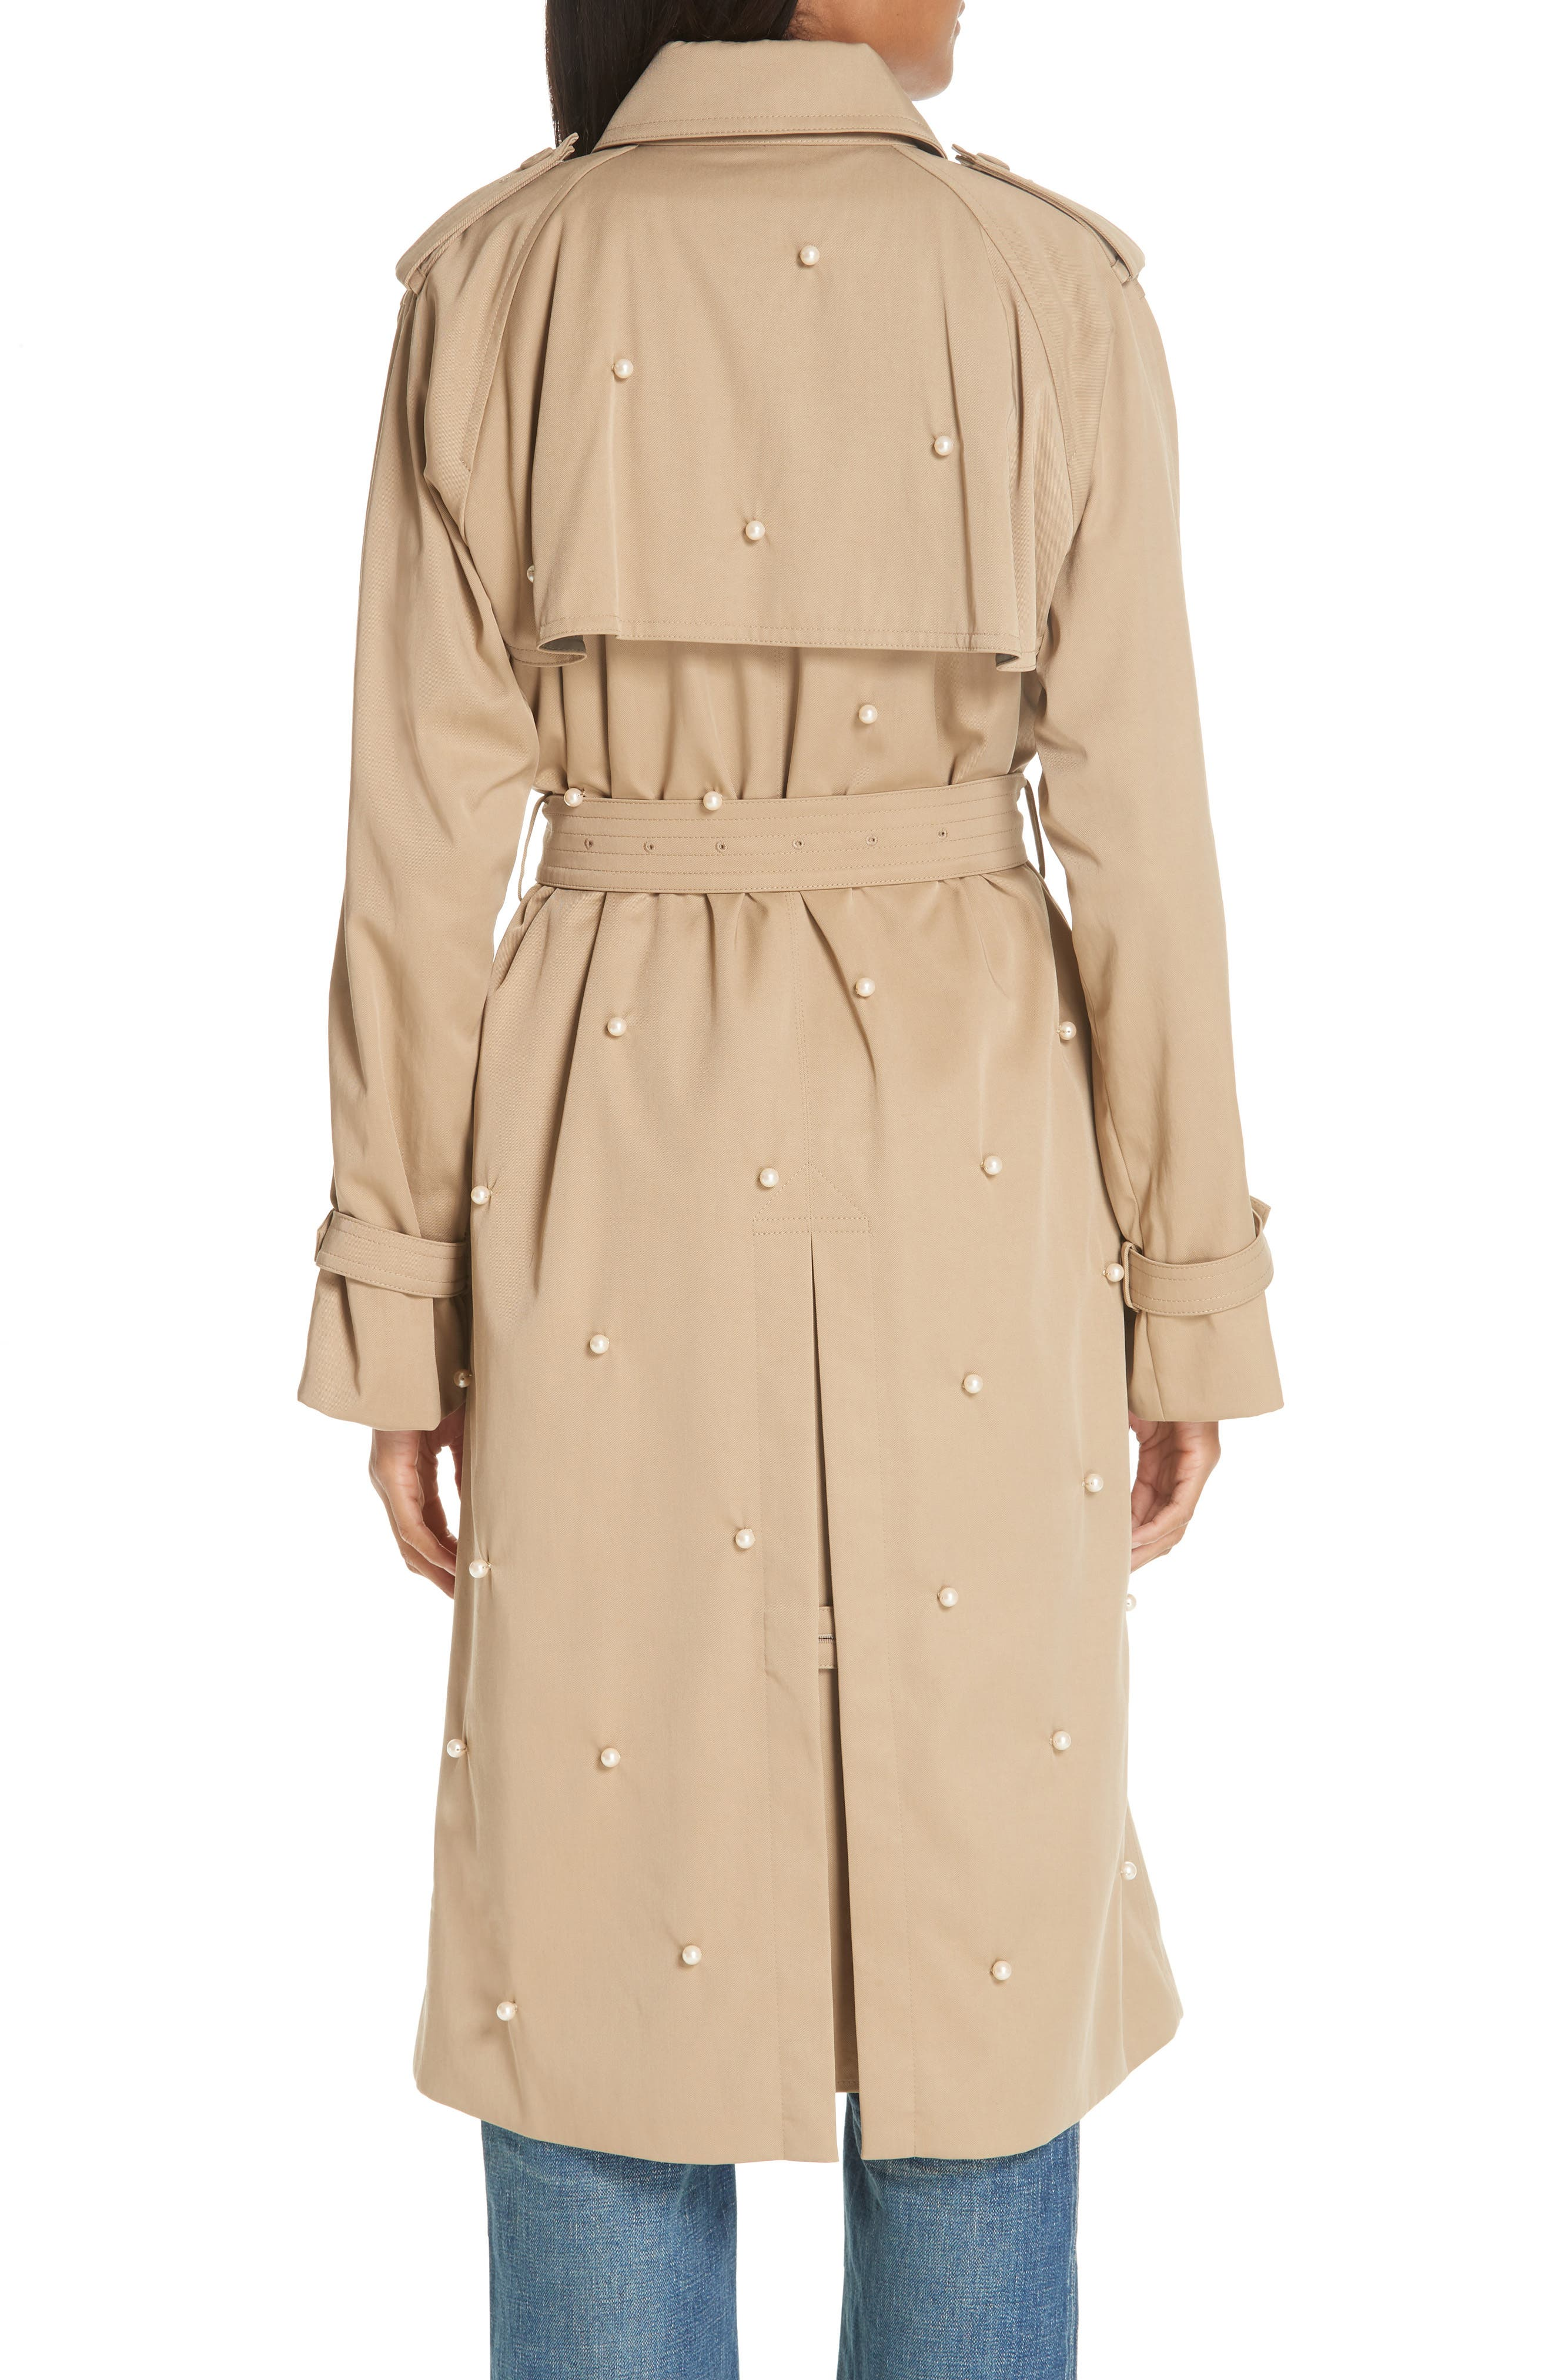 Imitation Pearl Embellished Trench Coat,                             Alternate thumbnail 2, color,                             BEIGE BEIG